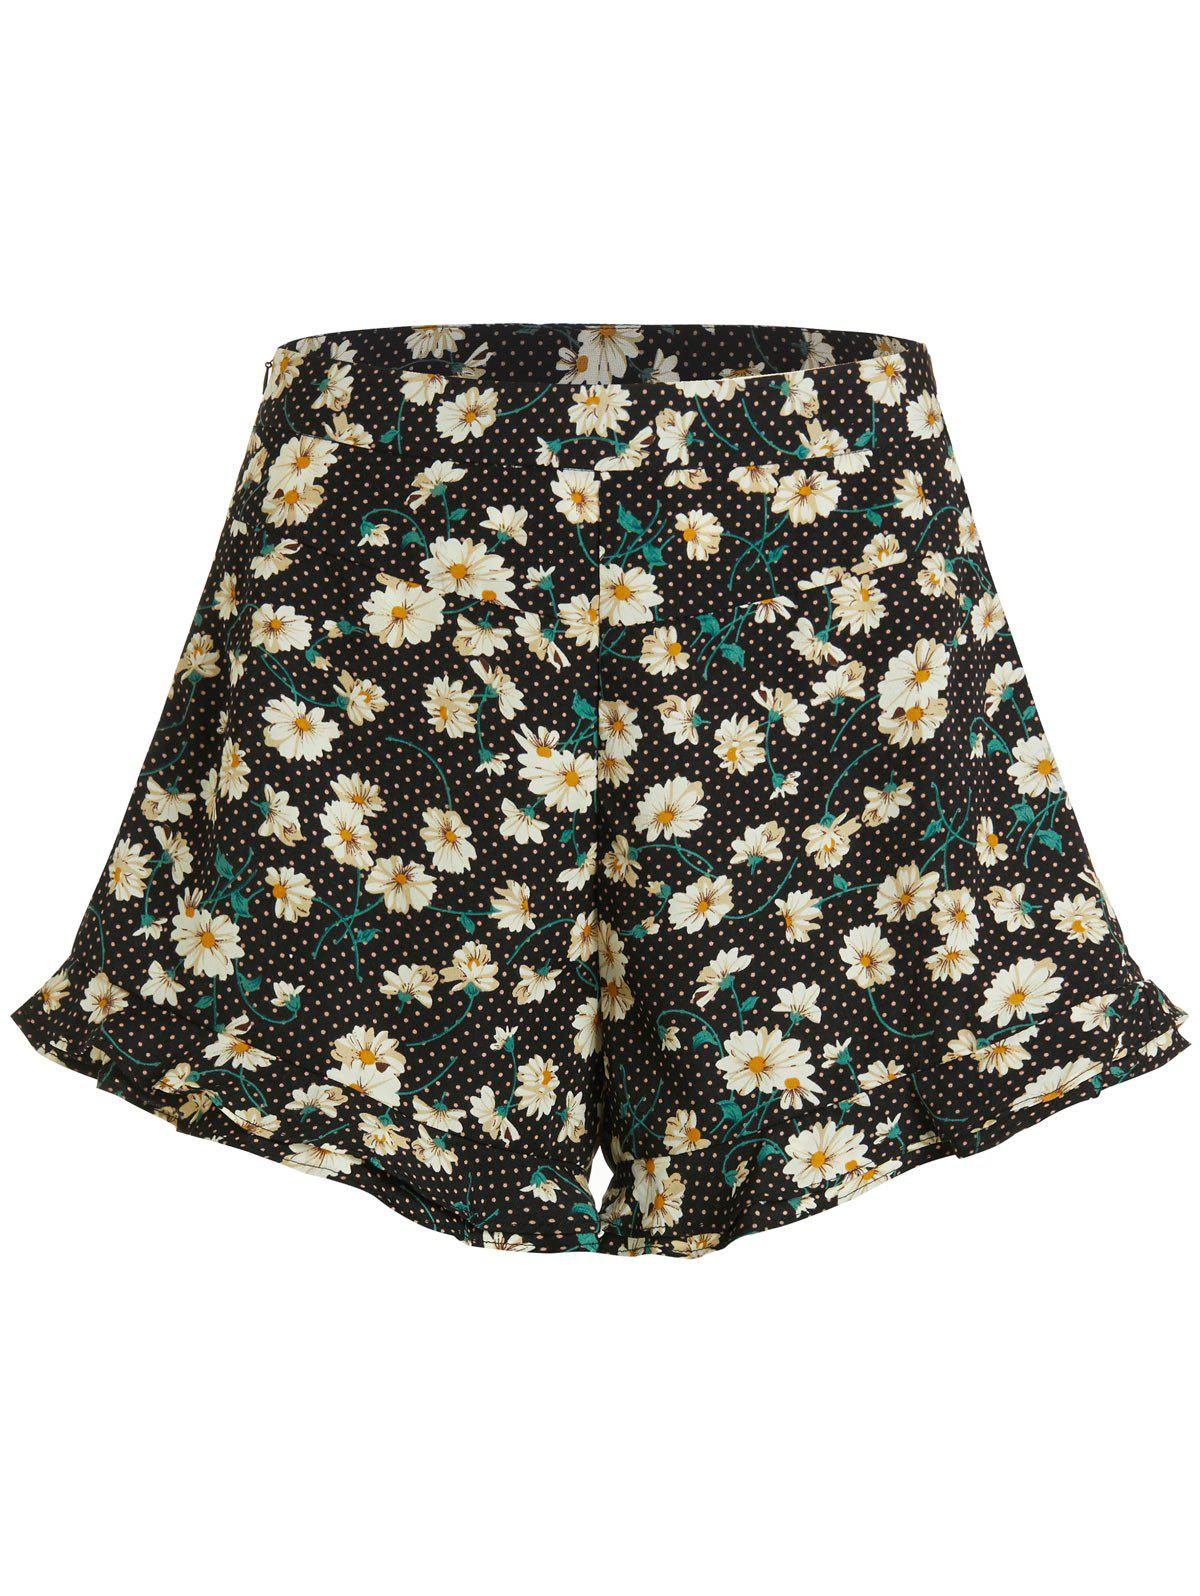 Cheap Polka Dot Daisy Print High Waisted Shorts